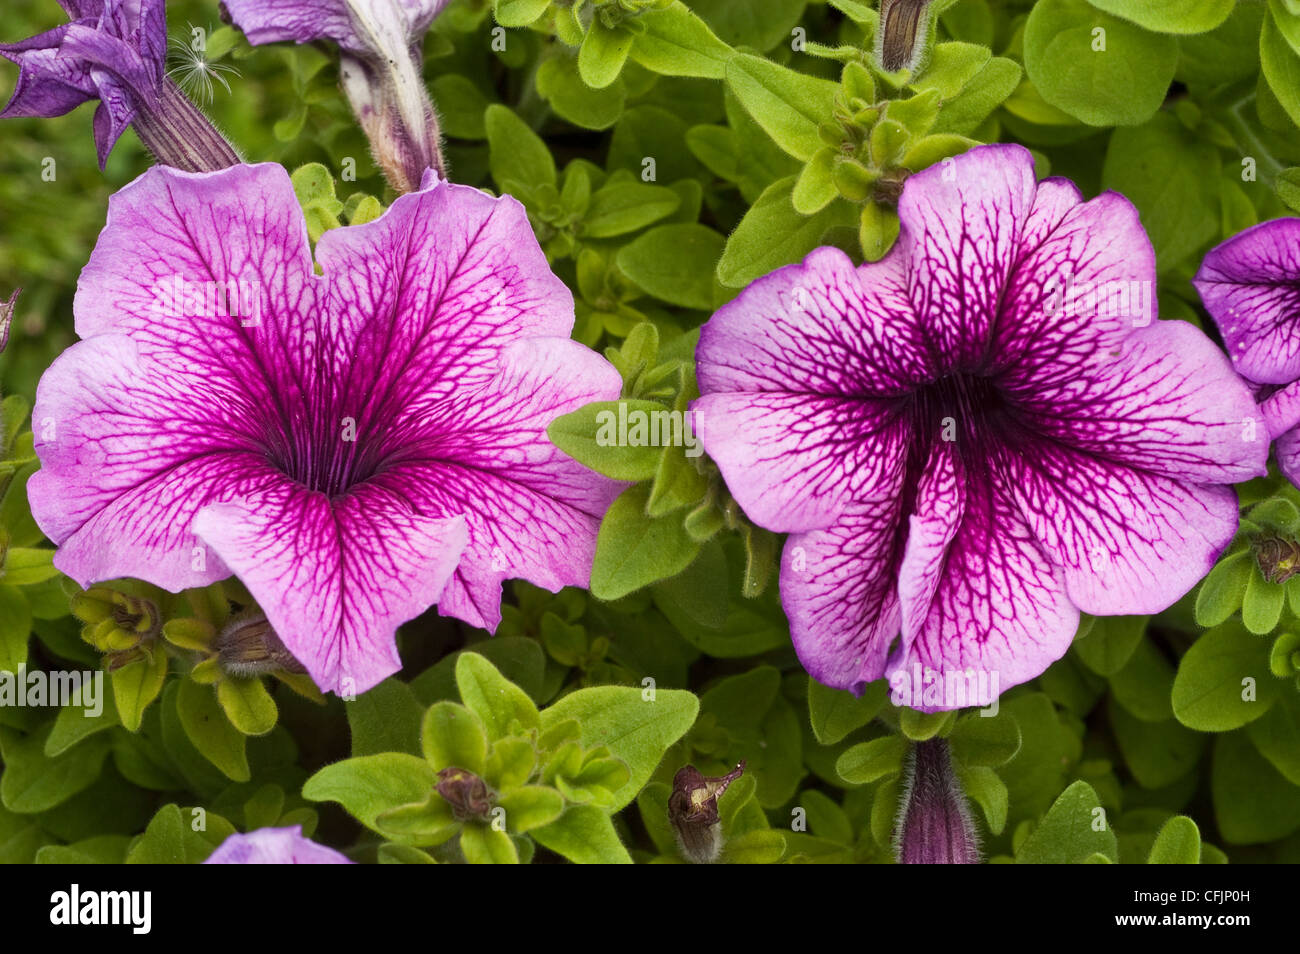 Pink violet flower close up Petunia Daddy Orchid - Stock Image